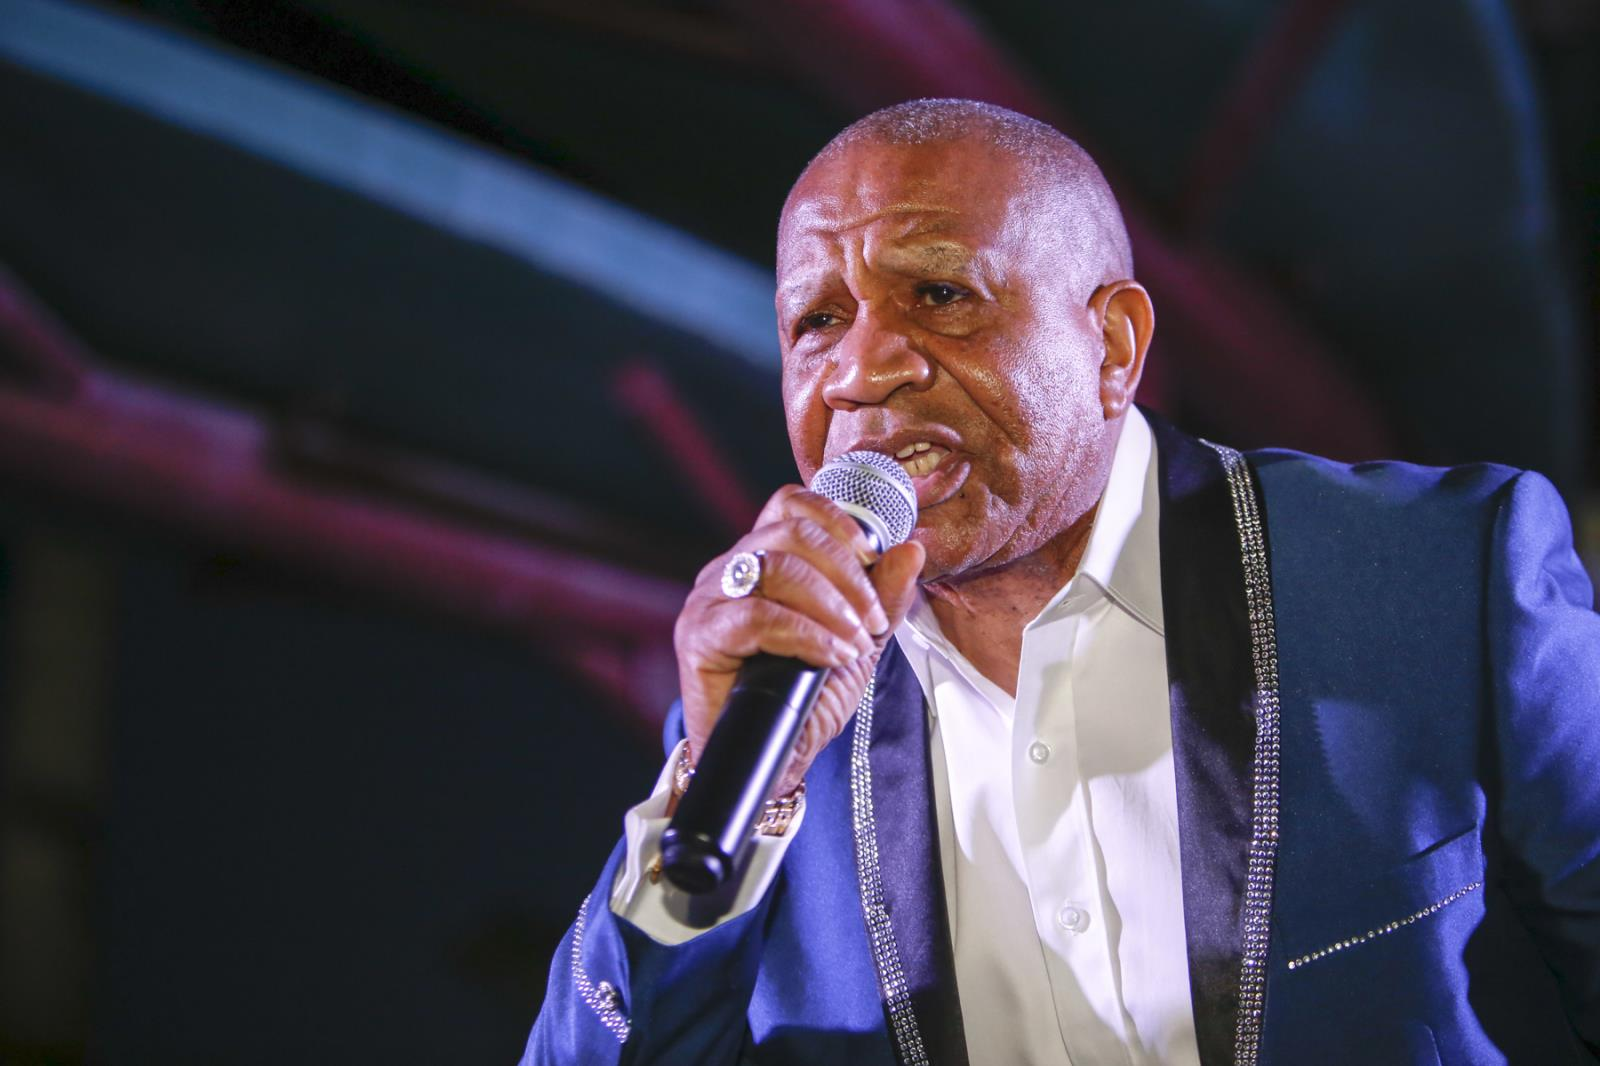 Lenny Williams singing